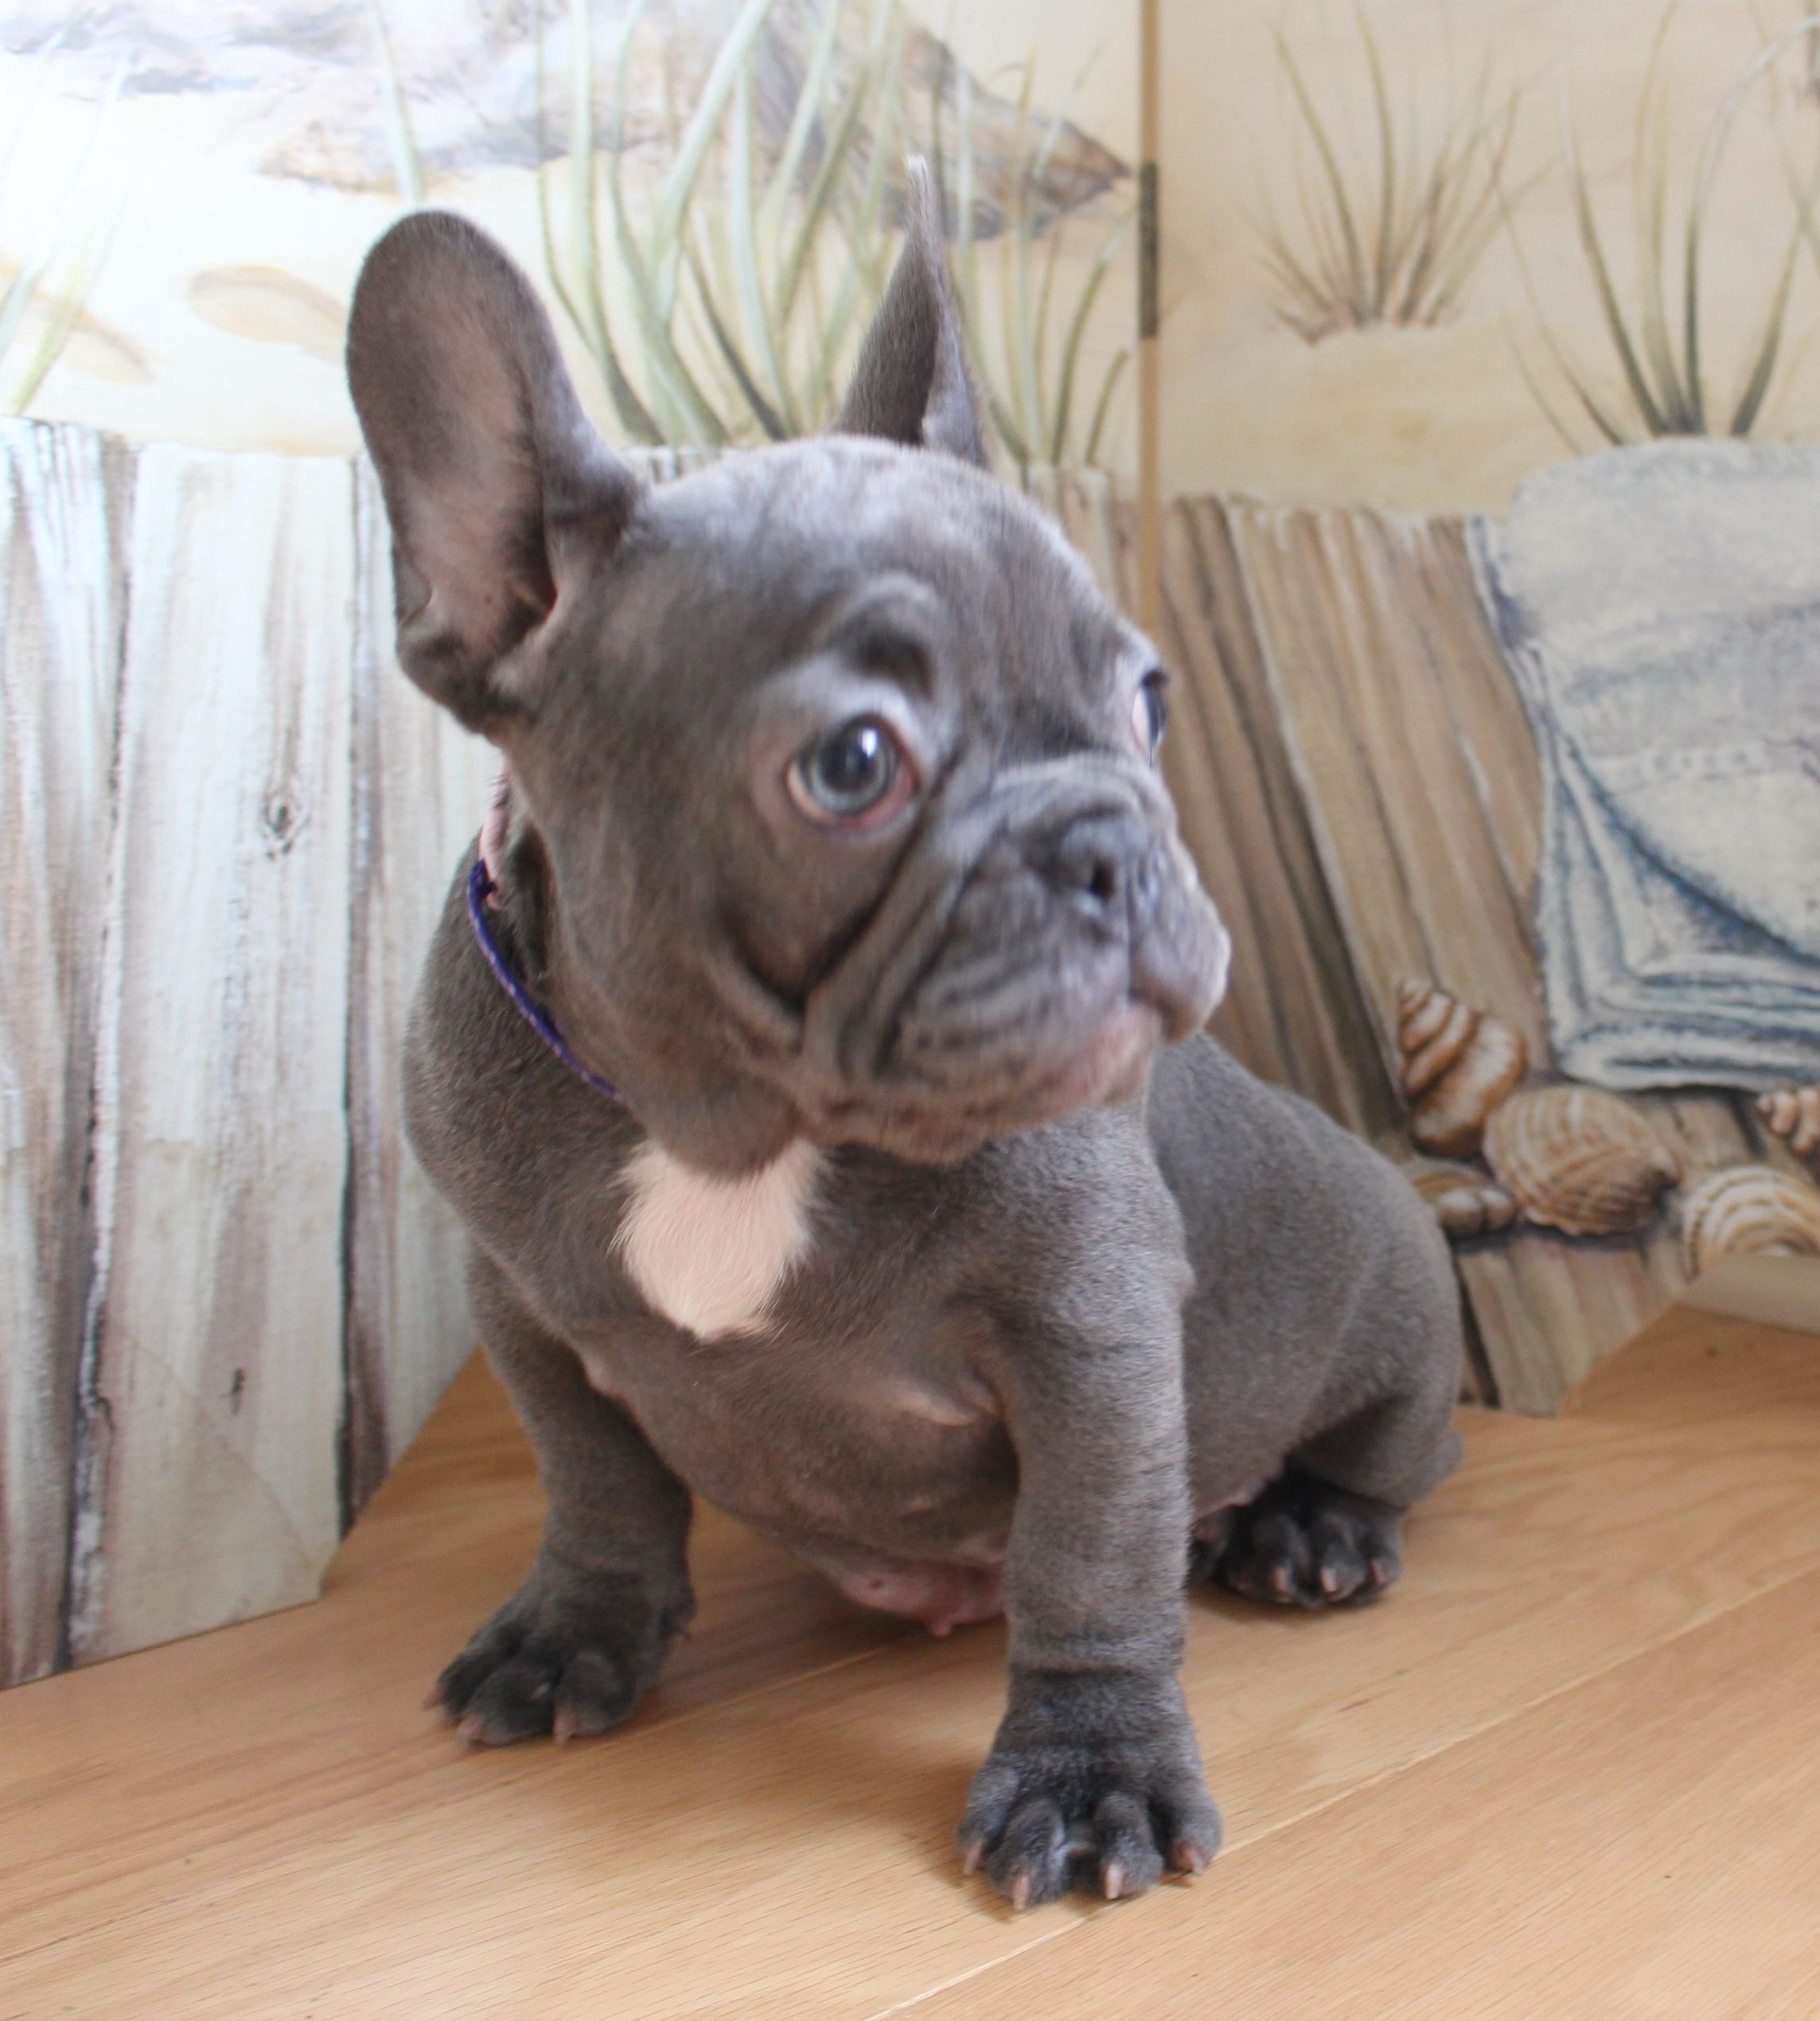 7 Weeks Old Akc Merle Pied French Bulldogs Frenchieforsale Frenchie4sale Frenchbulldogforsale Frenchbulld French Bulldog Bulldog French Bulldog Puppies